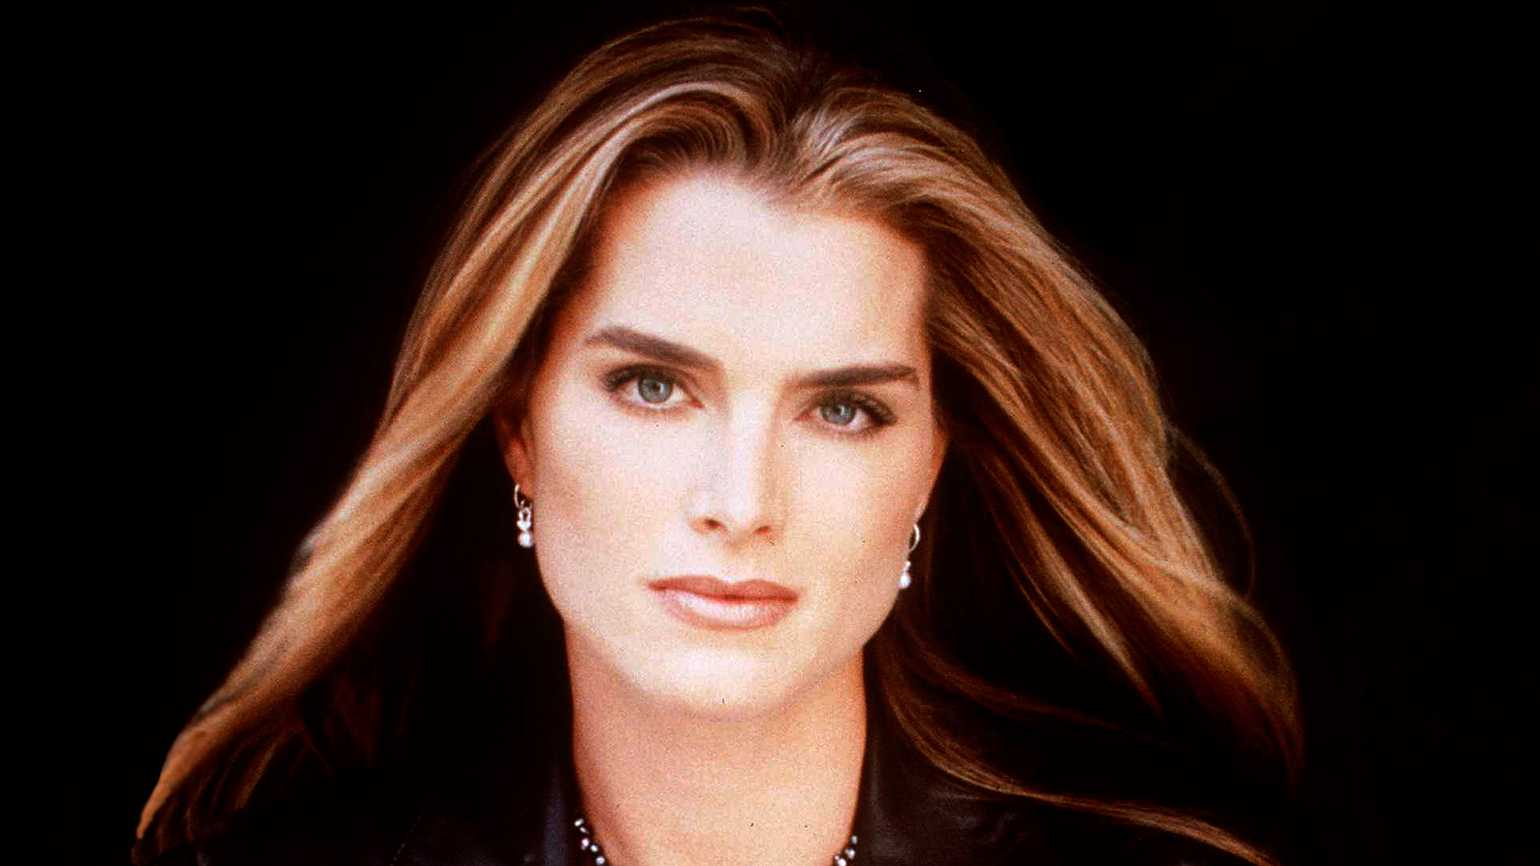 Photos Brooke Shields nudes (61 foto and video), Tits, Hot, Selfie, braless 2019